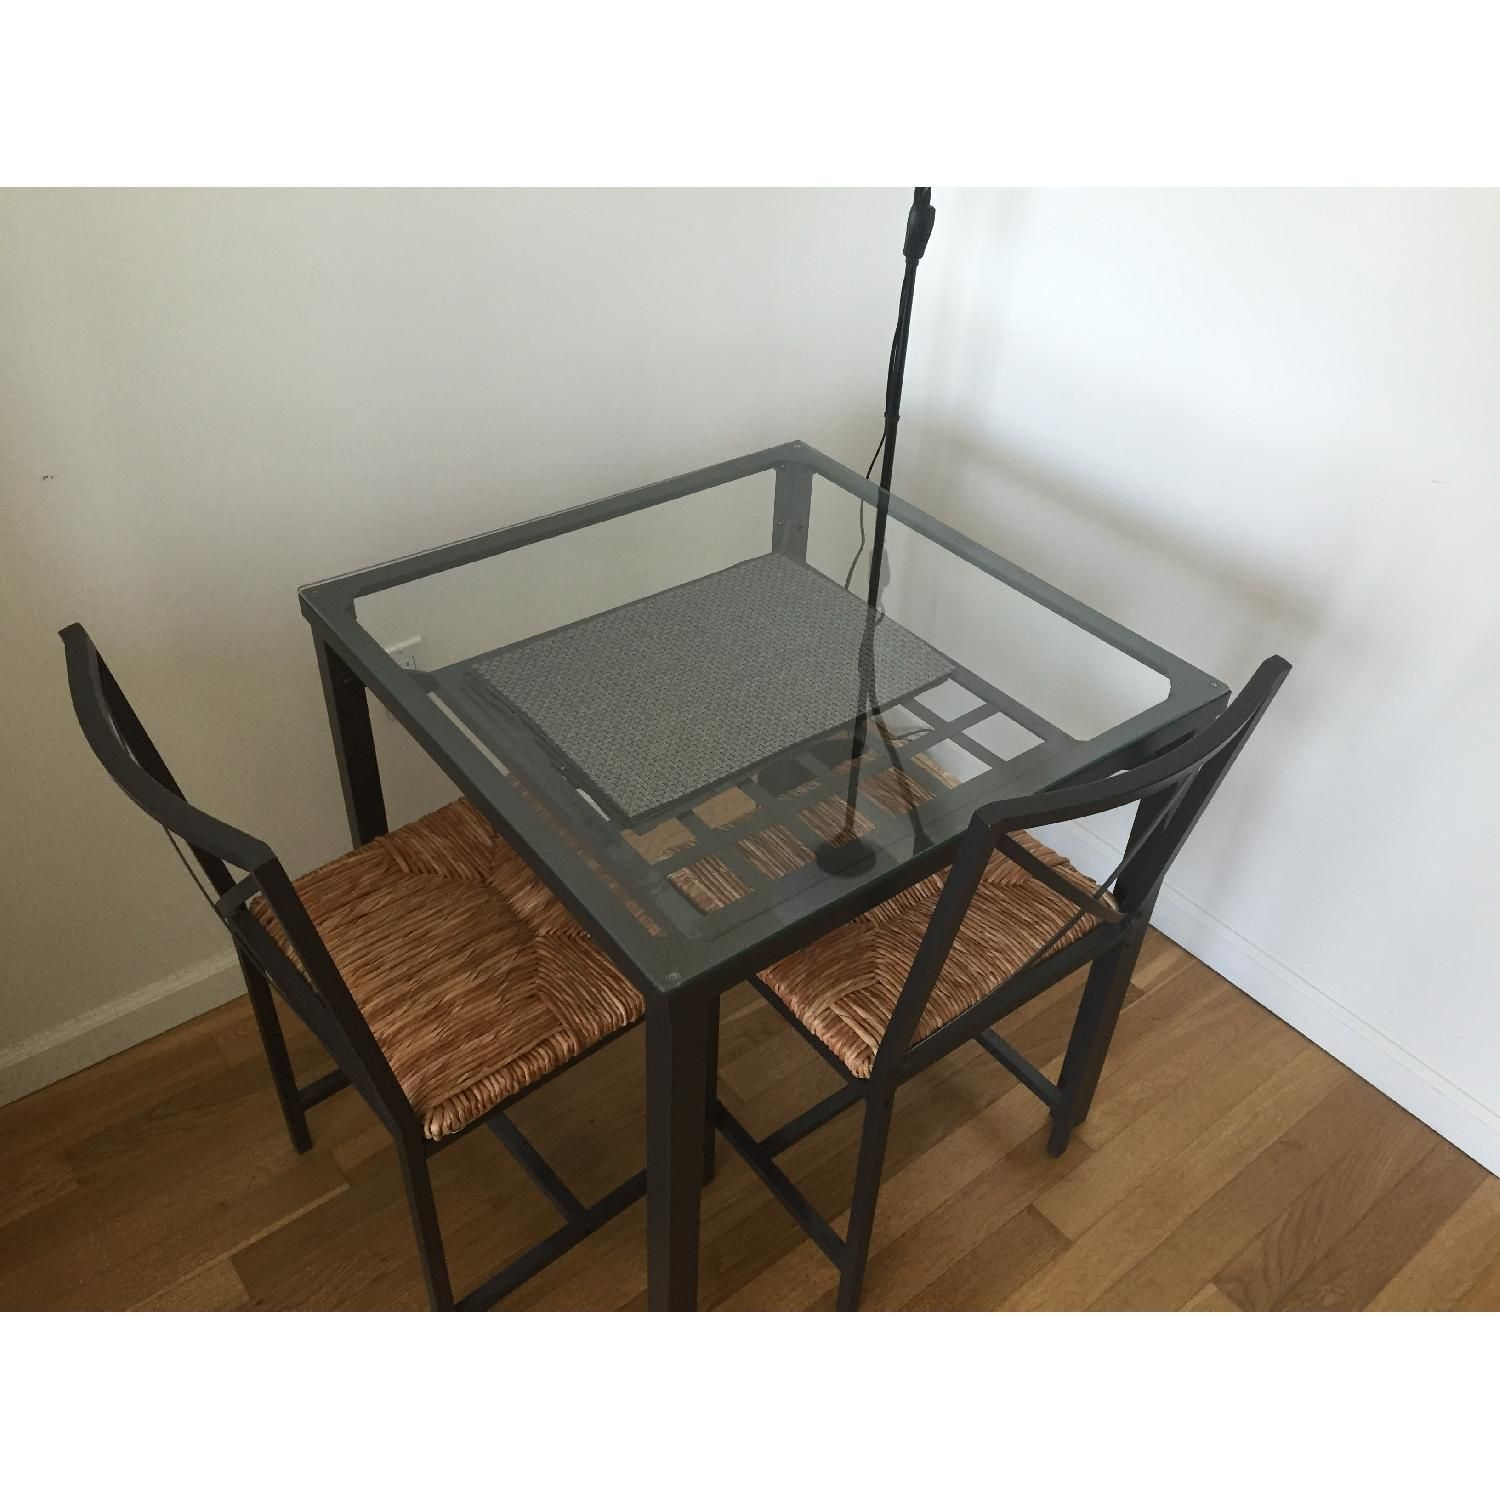 Ikea Granas Dining Table W 2 Chairs